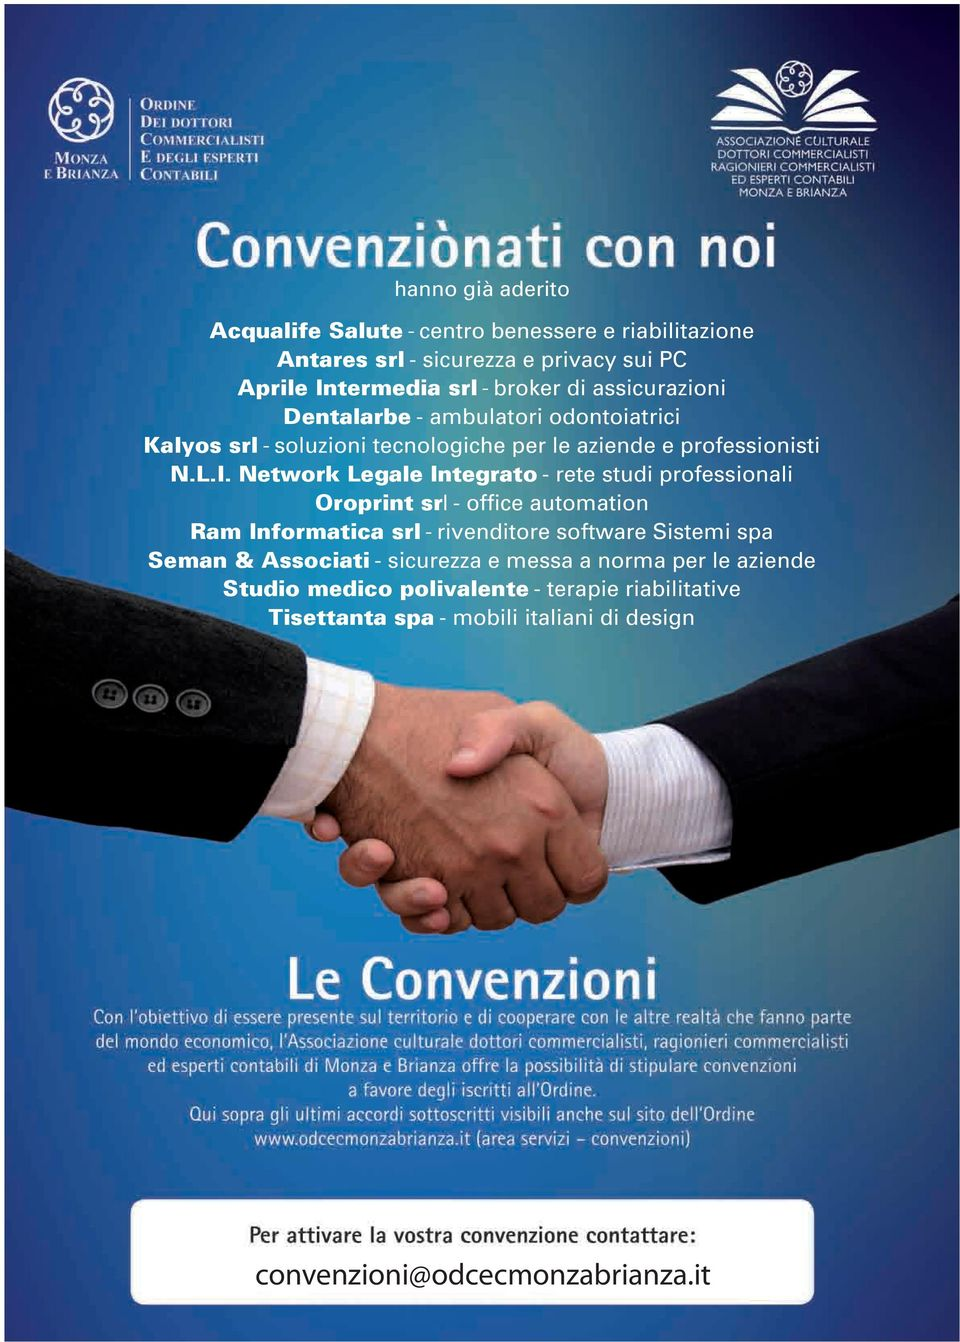 Network Legale Integrato - rete studi professionali Oroprint srl - office automation Ram Informatica srl - rivenditore software Sistemi spa Seman &